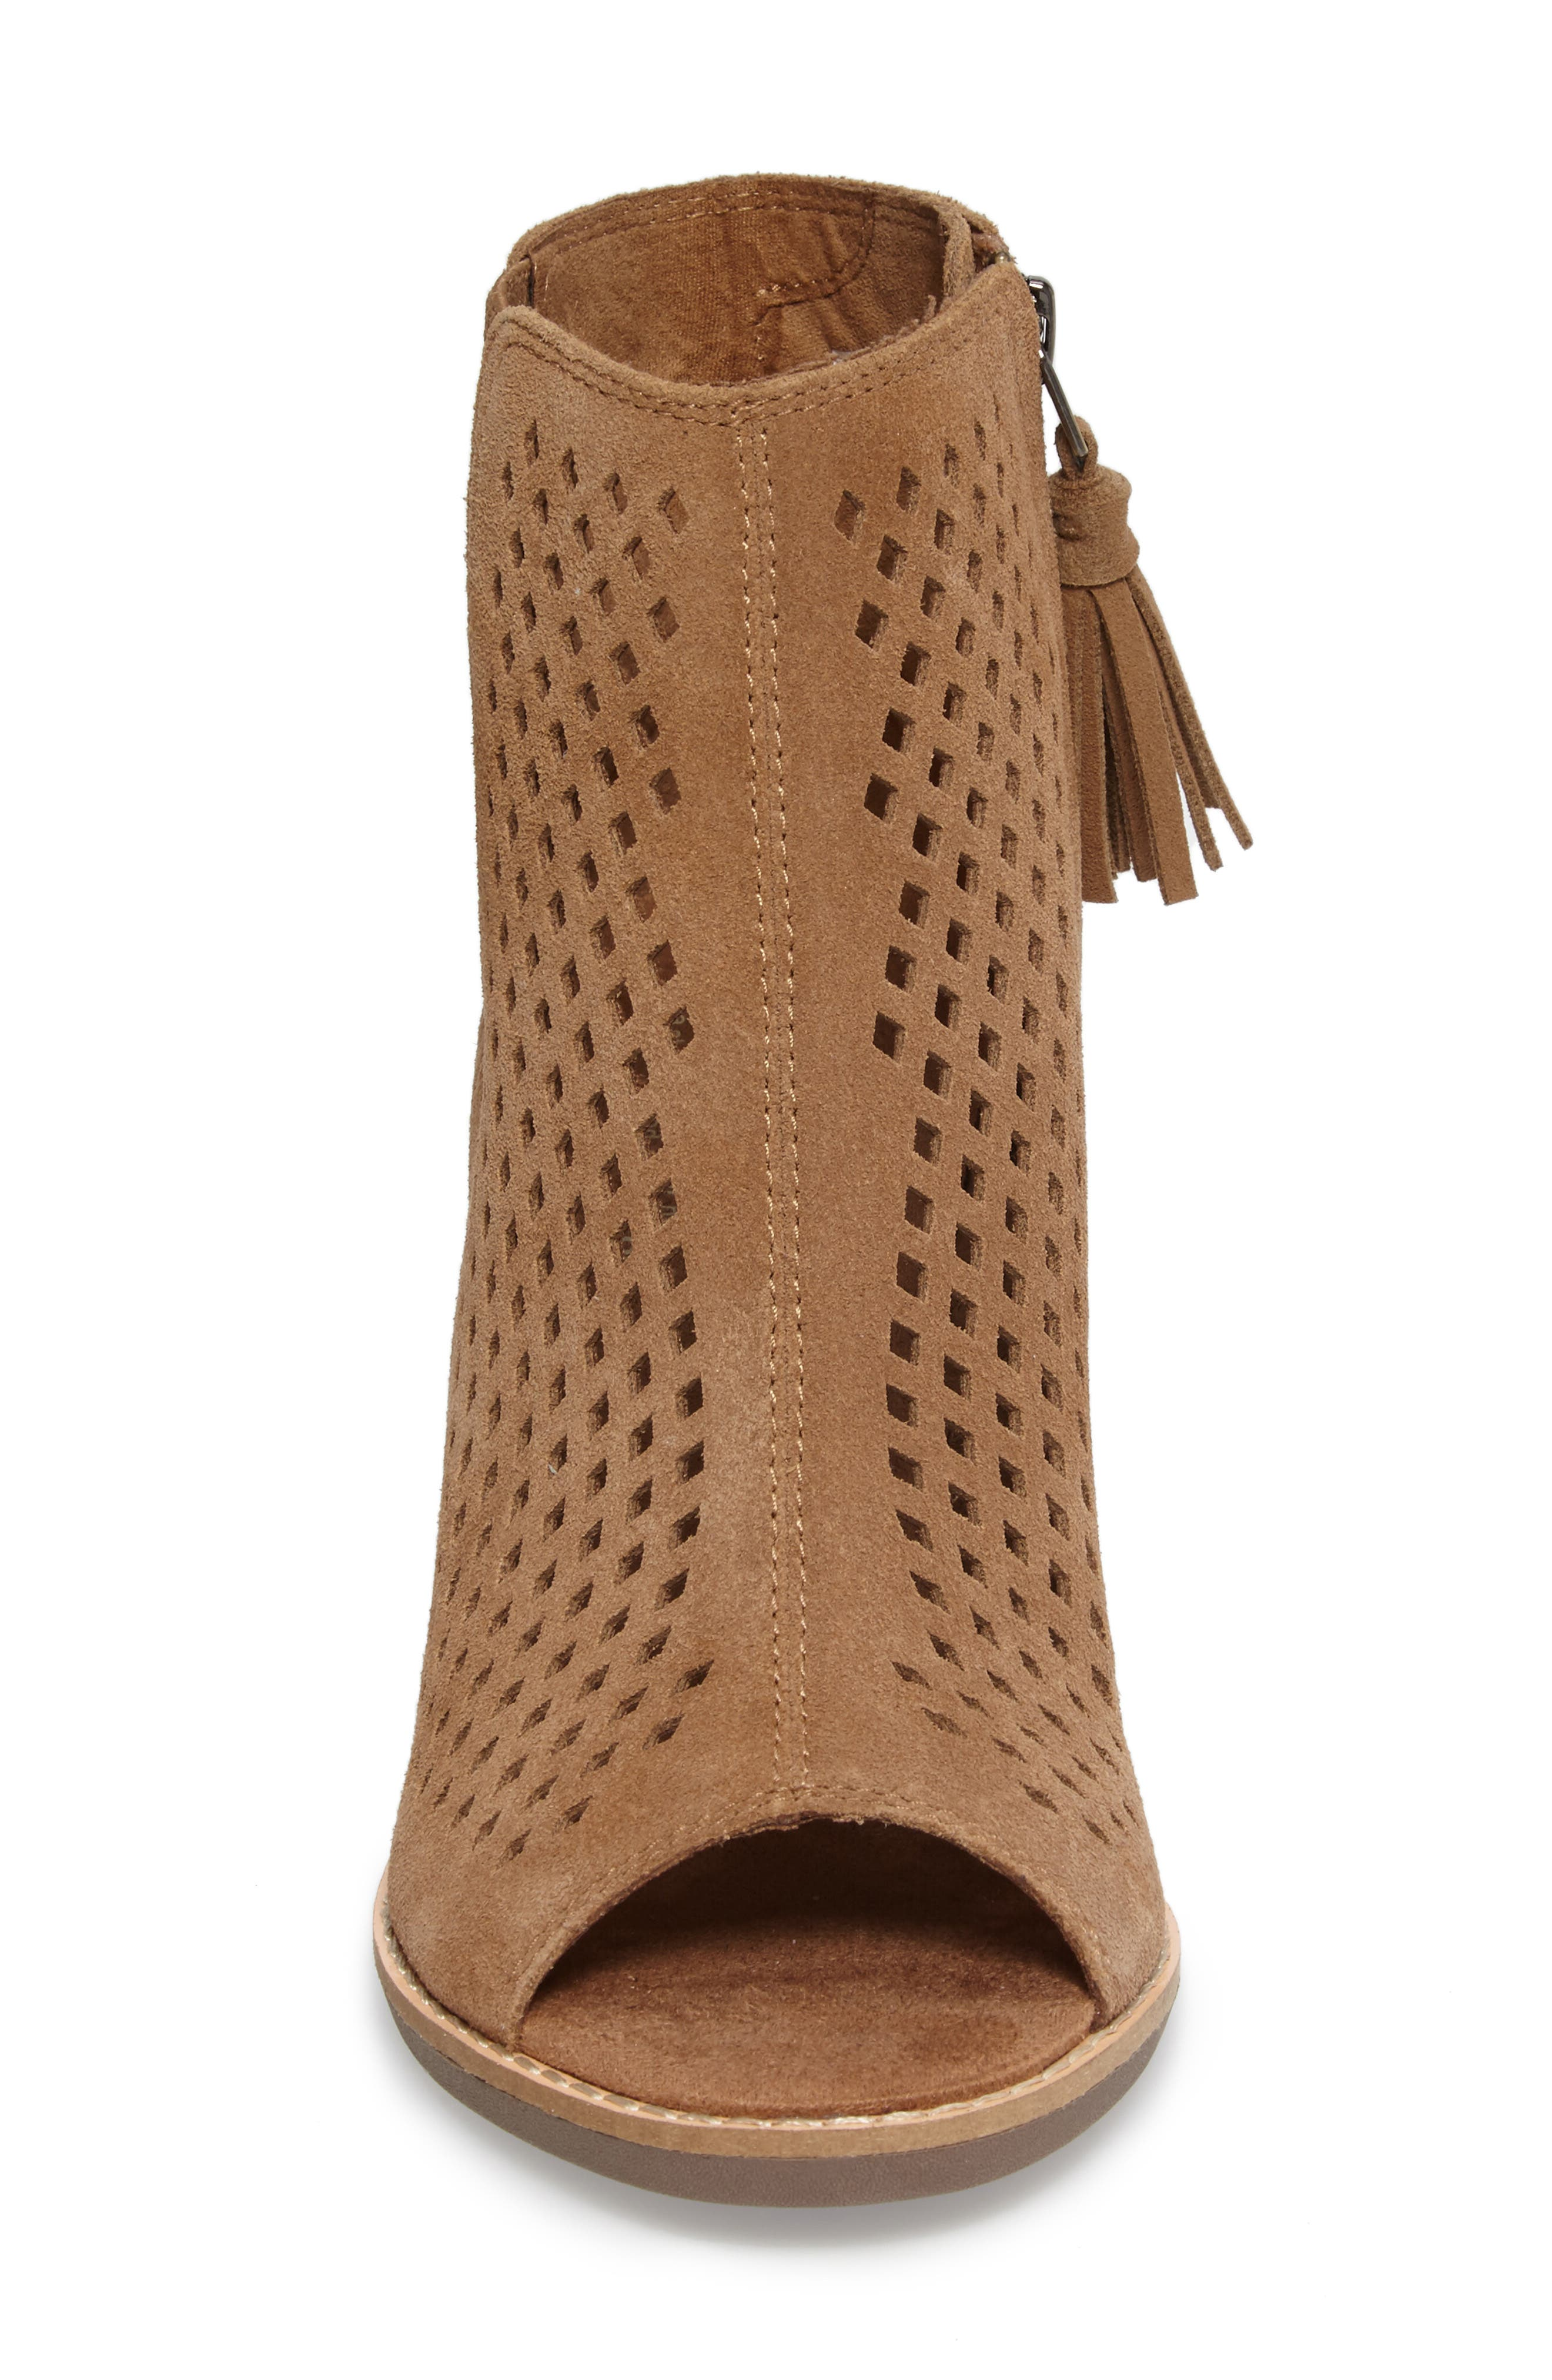 Majorca Peep Toe Bootie,                             Alternate thumbnail 5, color,                             Toffee Suede